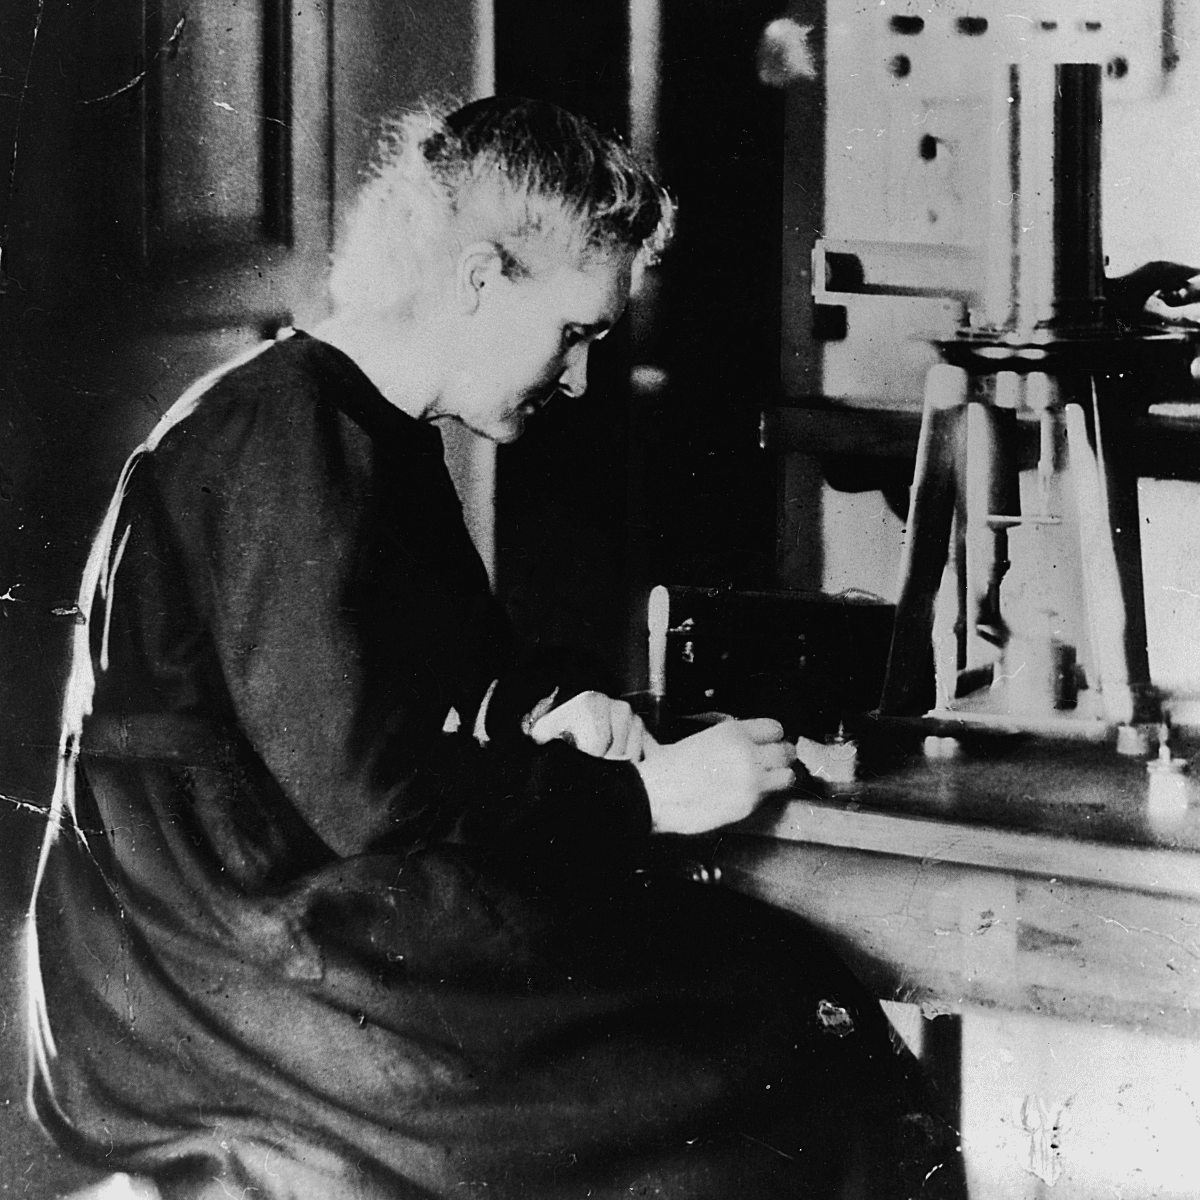 Marie Curie in Laboratory, 1920